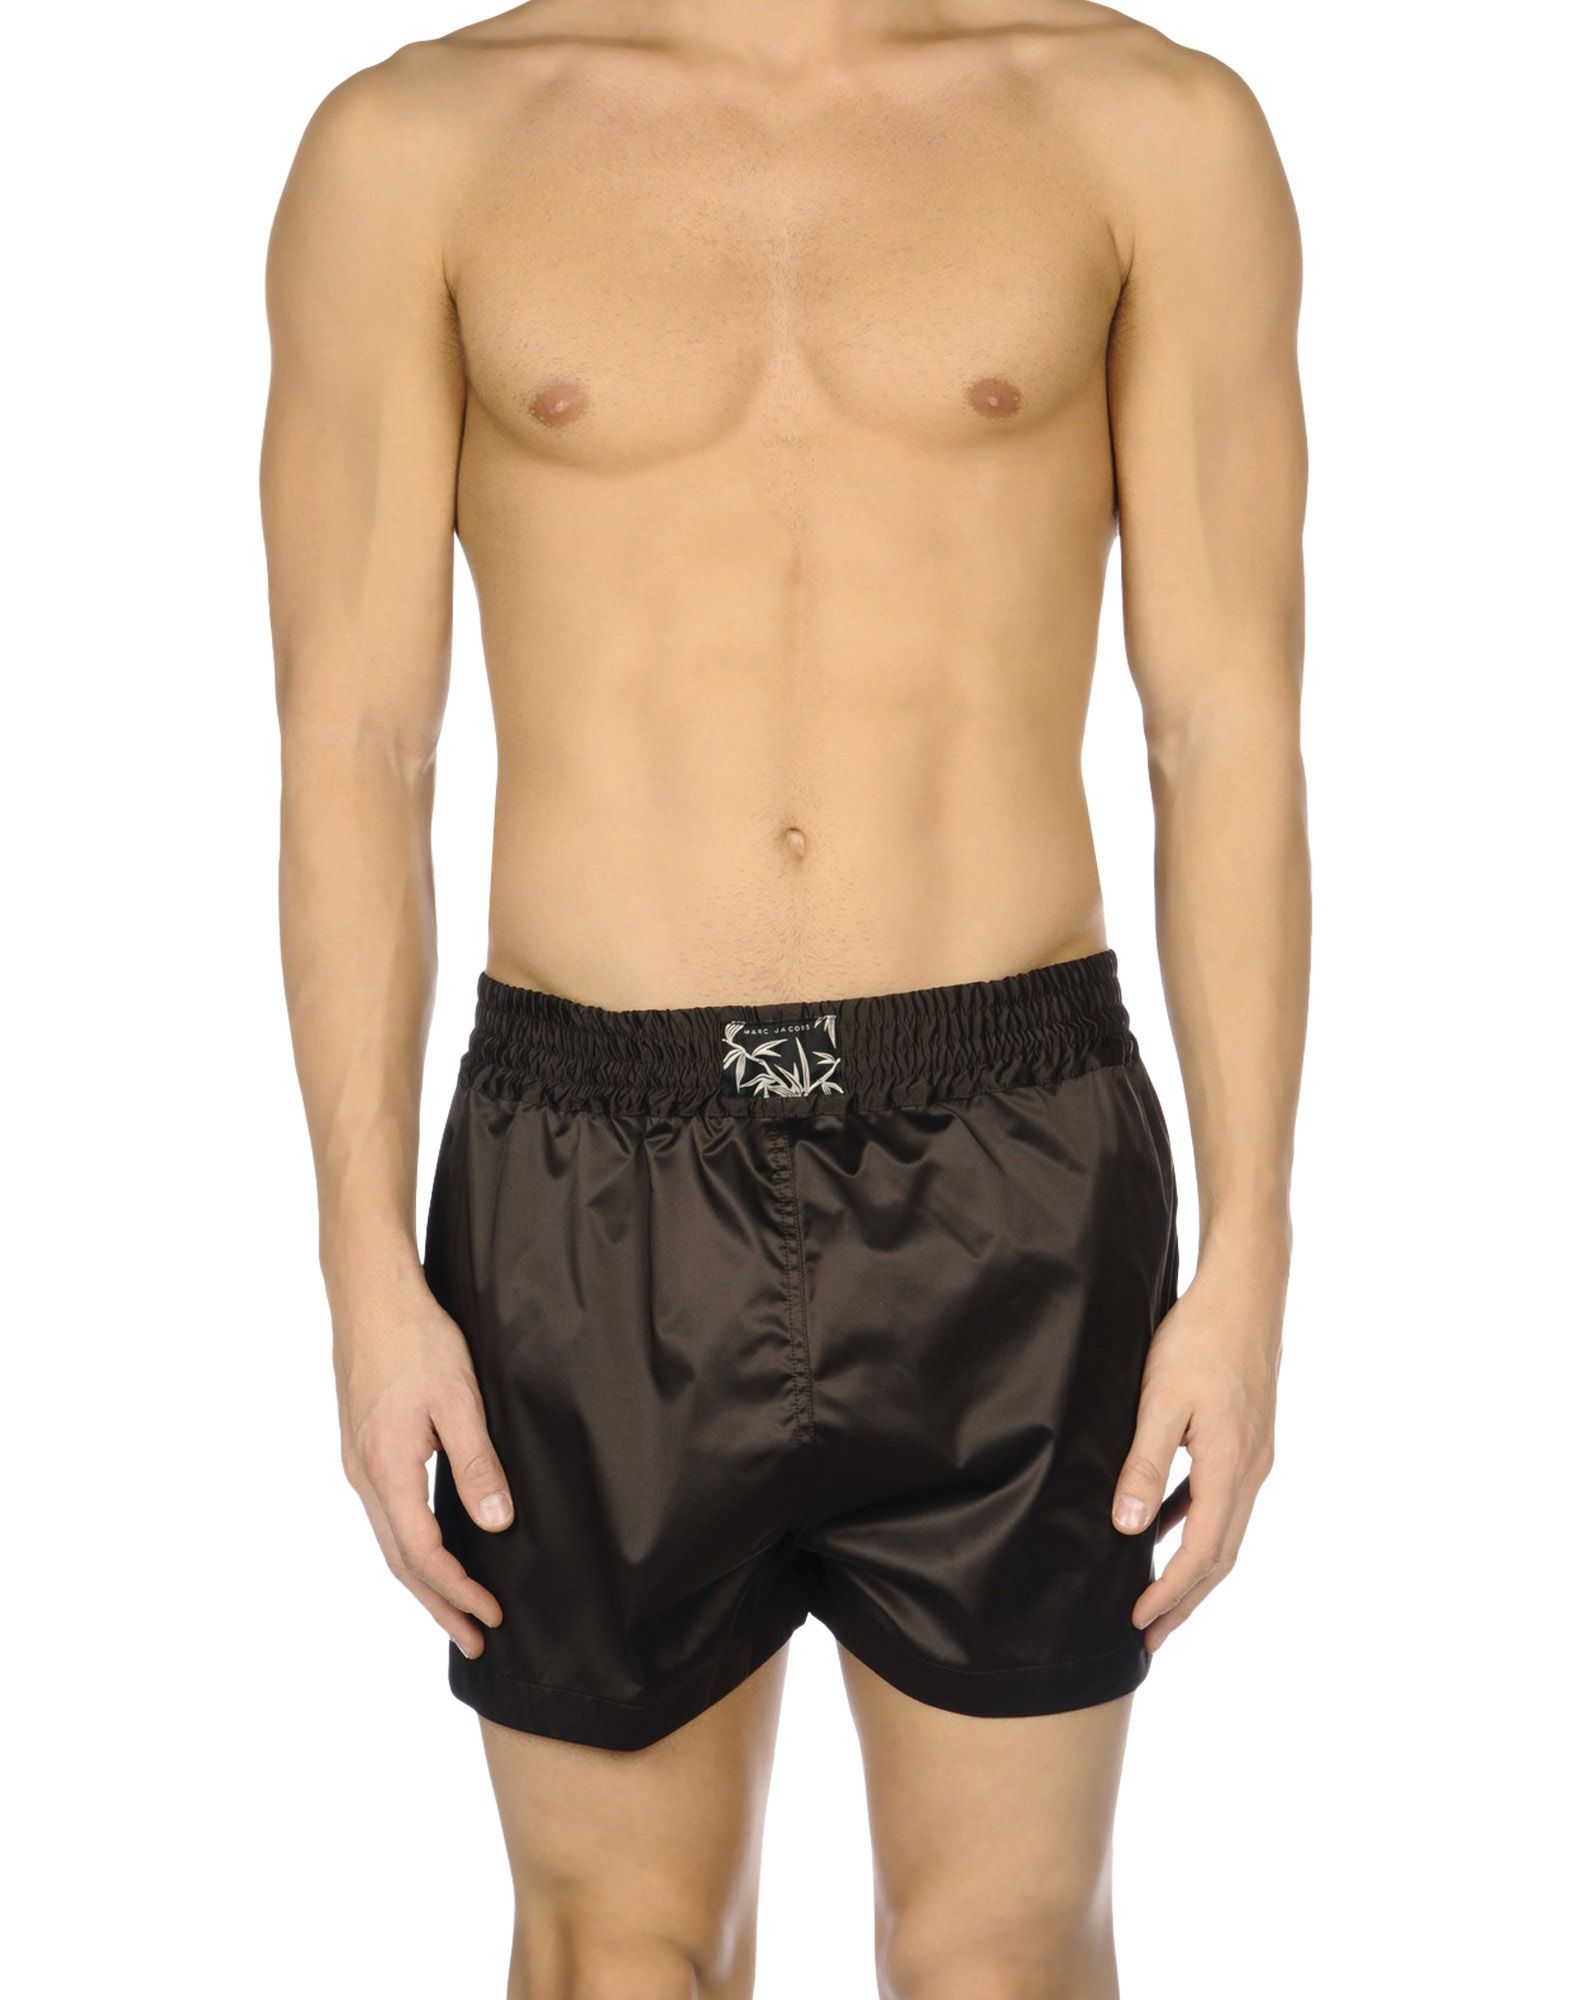 marc jacobs male  marc jacobs swimming trunks